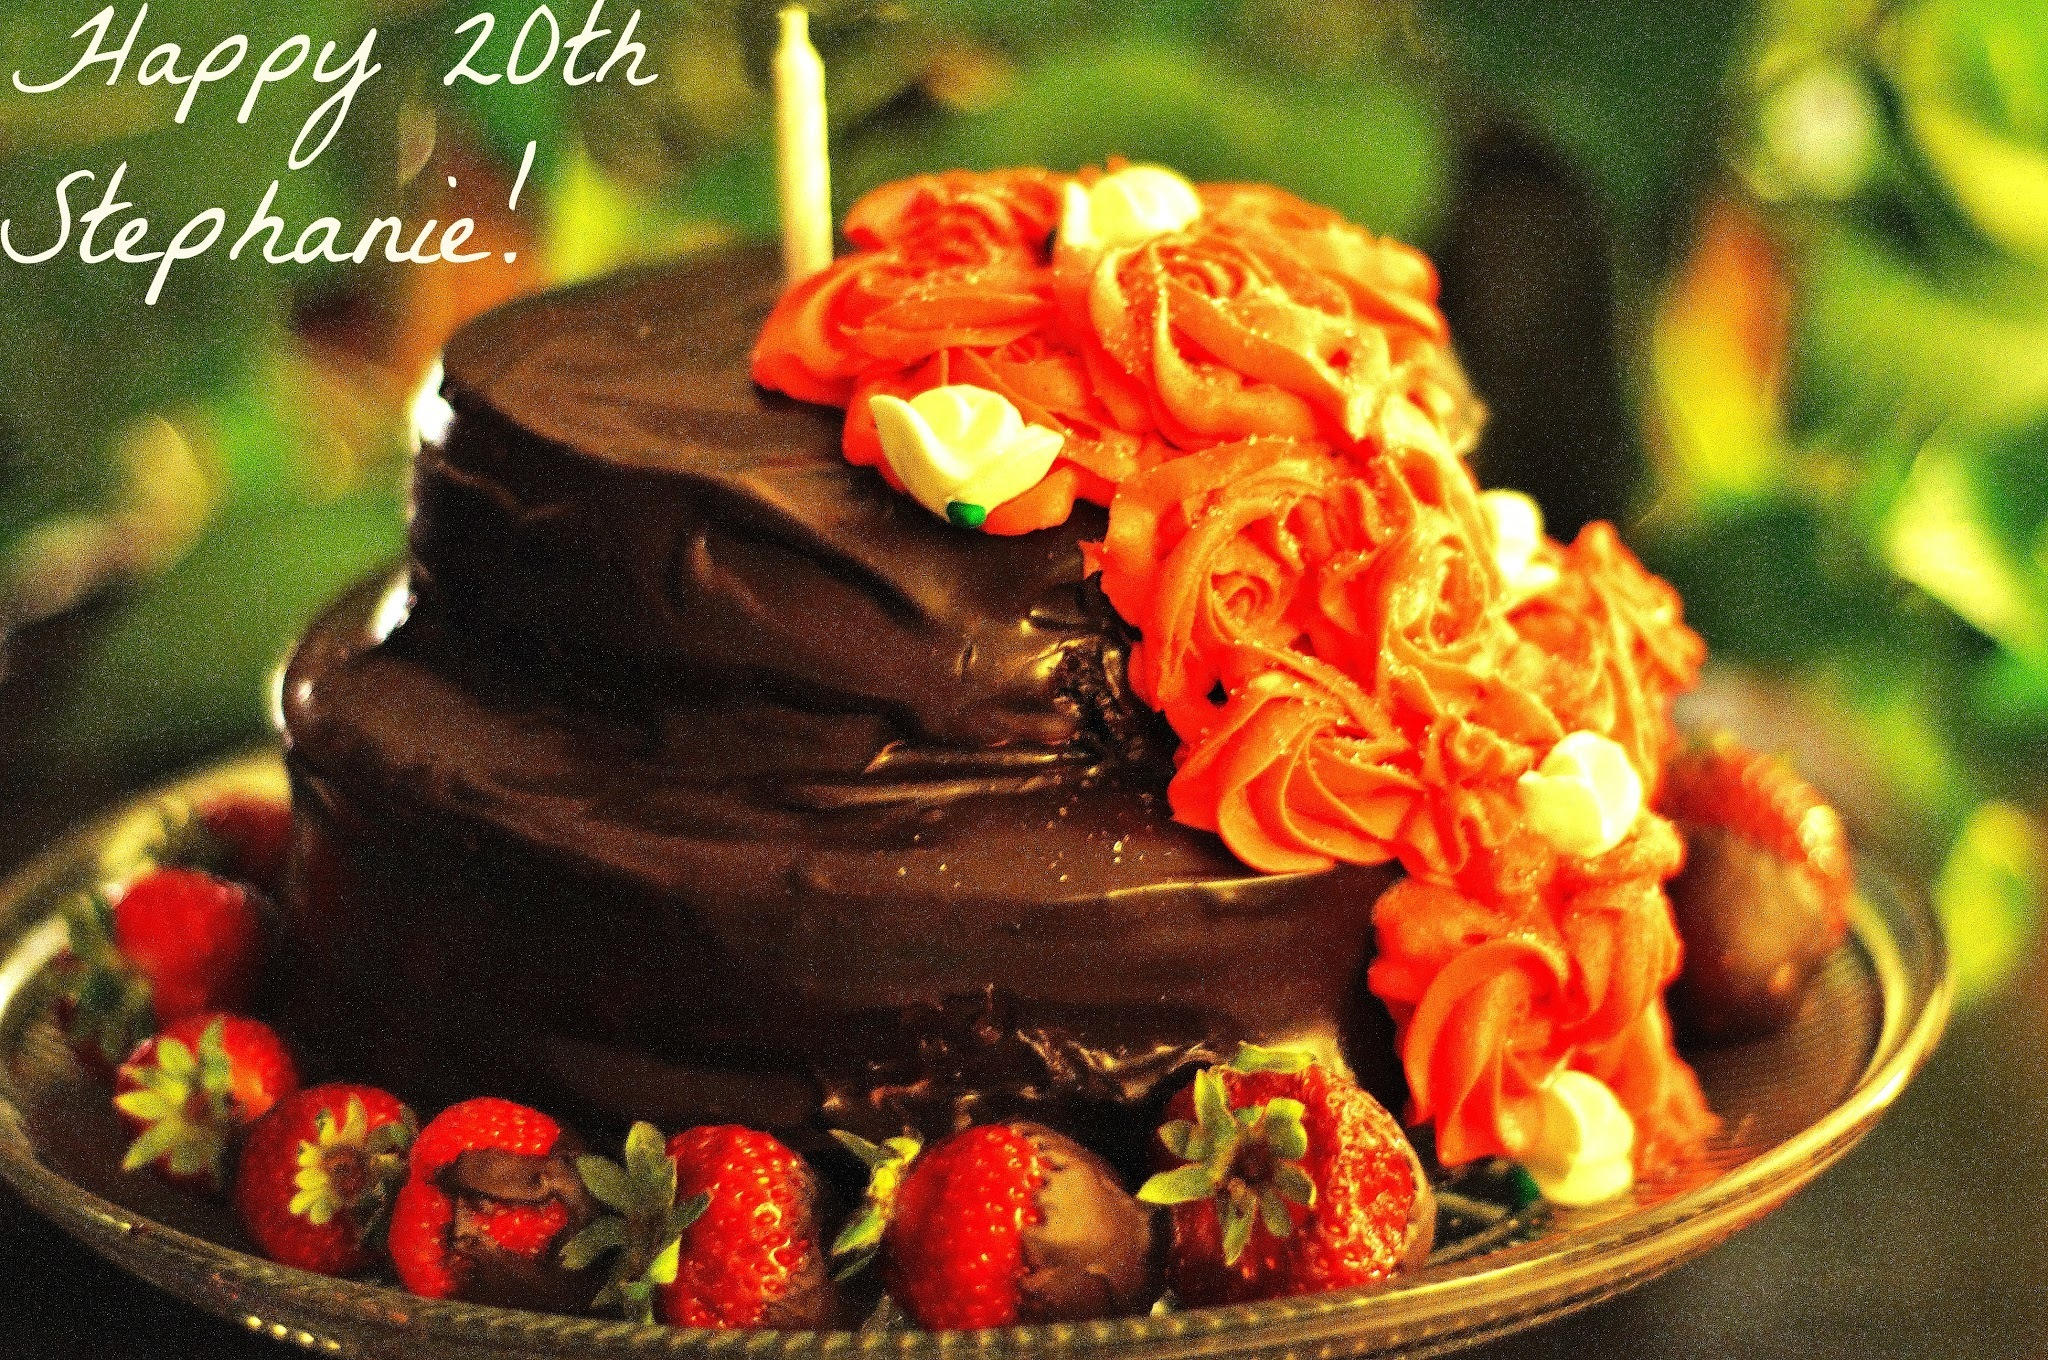 ~Stephanie's 20th Birthday Chocolate Cake with Strawberry Cream Cheese Filling and Dark Chocolate Ganache~